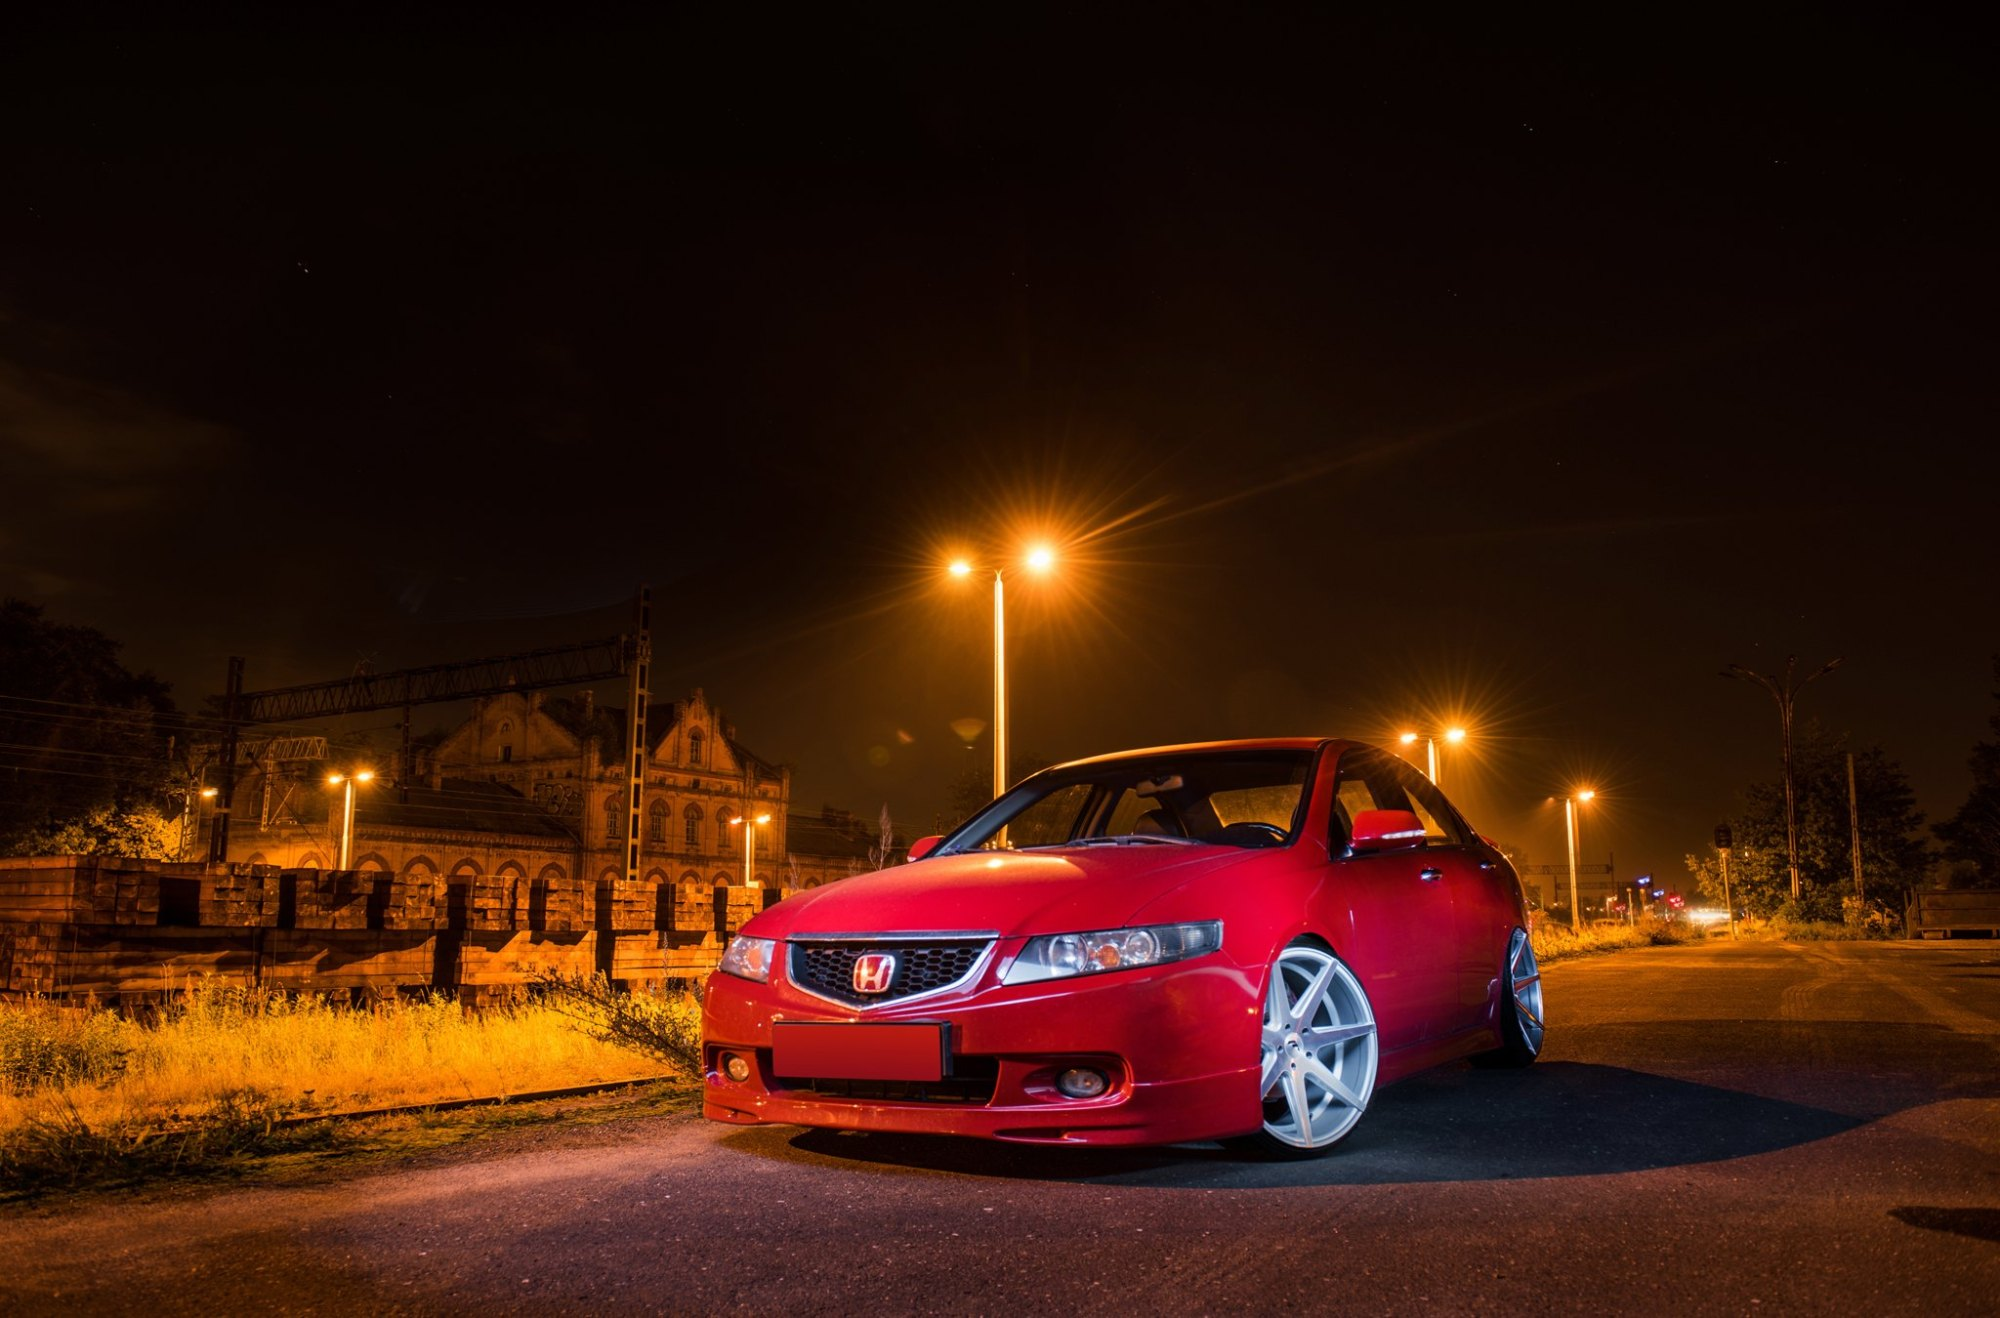 hight resolution of custom 2006 honda accord images mods photos upgrades carid com gallery